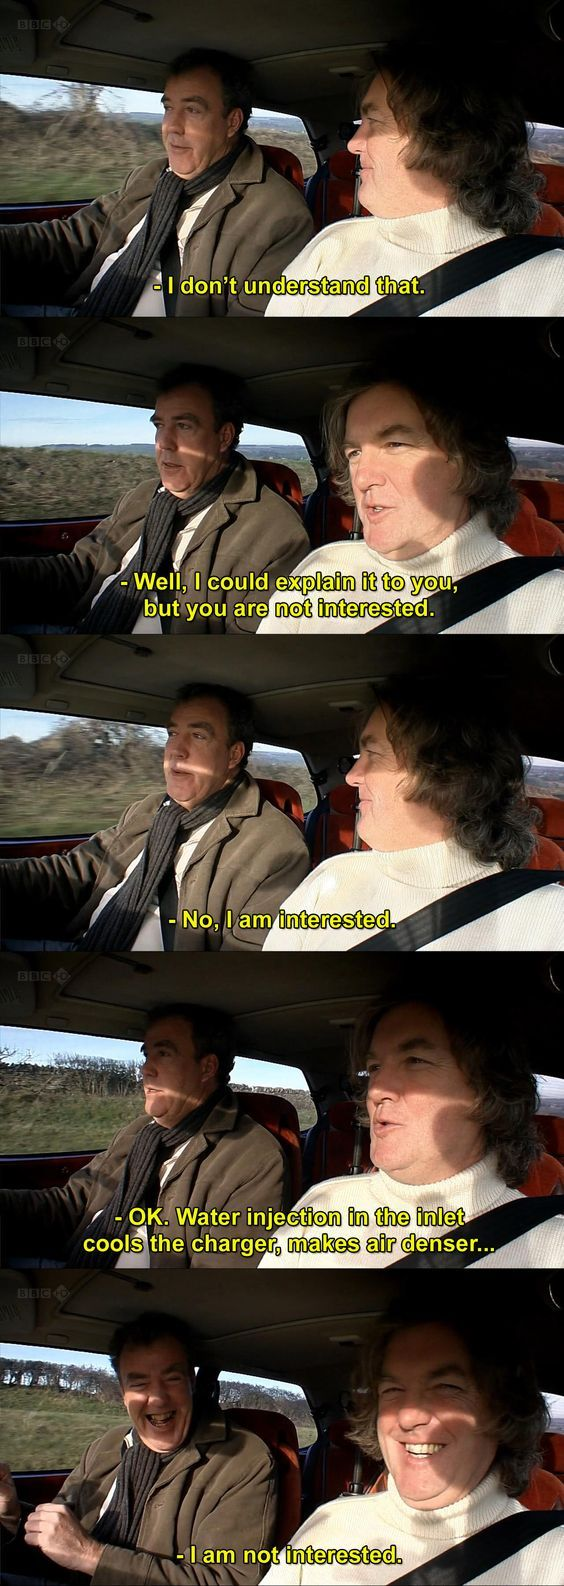 17 Best Images About Lucu On Pinterest Jeremy Clarkson Gifs And